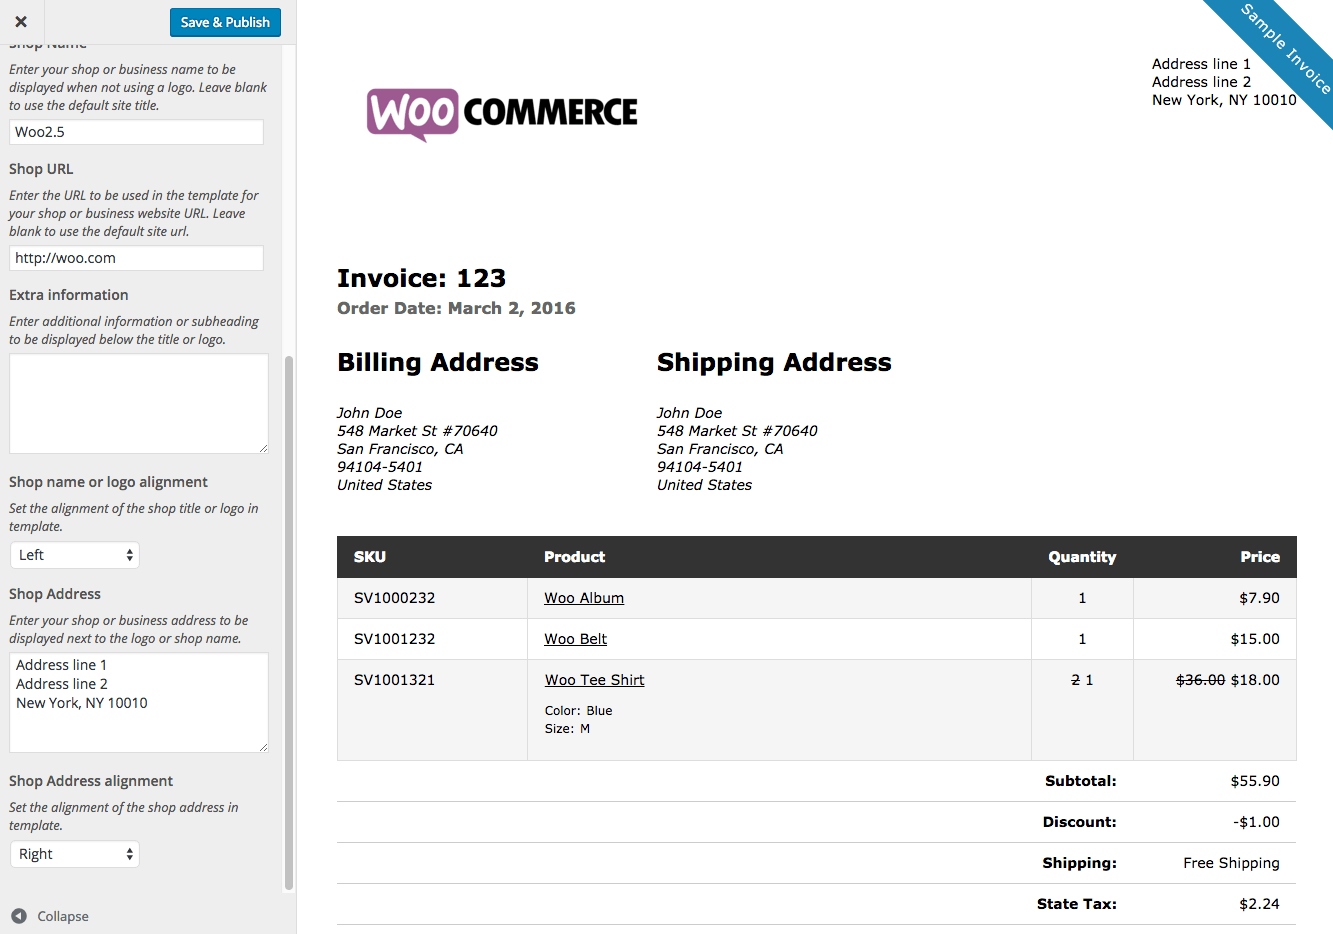 Imagerackus  Nice Woocommerce Print Invoices Amp Packing Lists  Woocommerce Docs With Exquisite Woocommerce Print Invoices  Packing Lists Customizer With Attractive Old Navy Return No Receipt Also How To Do A Read Receipt In Gmail In Addition Old Navy Return Without Receipt And Receipt Organizer App As Well As How To Get A Duplicate Receipt From Walmart Additionally Cvs Receipt From Docswoocommercecom With Imagerackus  Exquisite Woocommerce Print Invoices Amp Packing Lists  Woocommerce Docs With Attractive Woocommerce Print Invoices  Packing Lists Customizer And Nice Old Navy Return No Receipt Also How To Do A Read Receipt In Gmail In Addition Old Navy Return Without Receipt From Docswoocommercecom